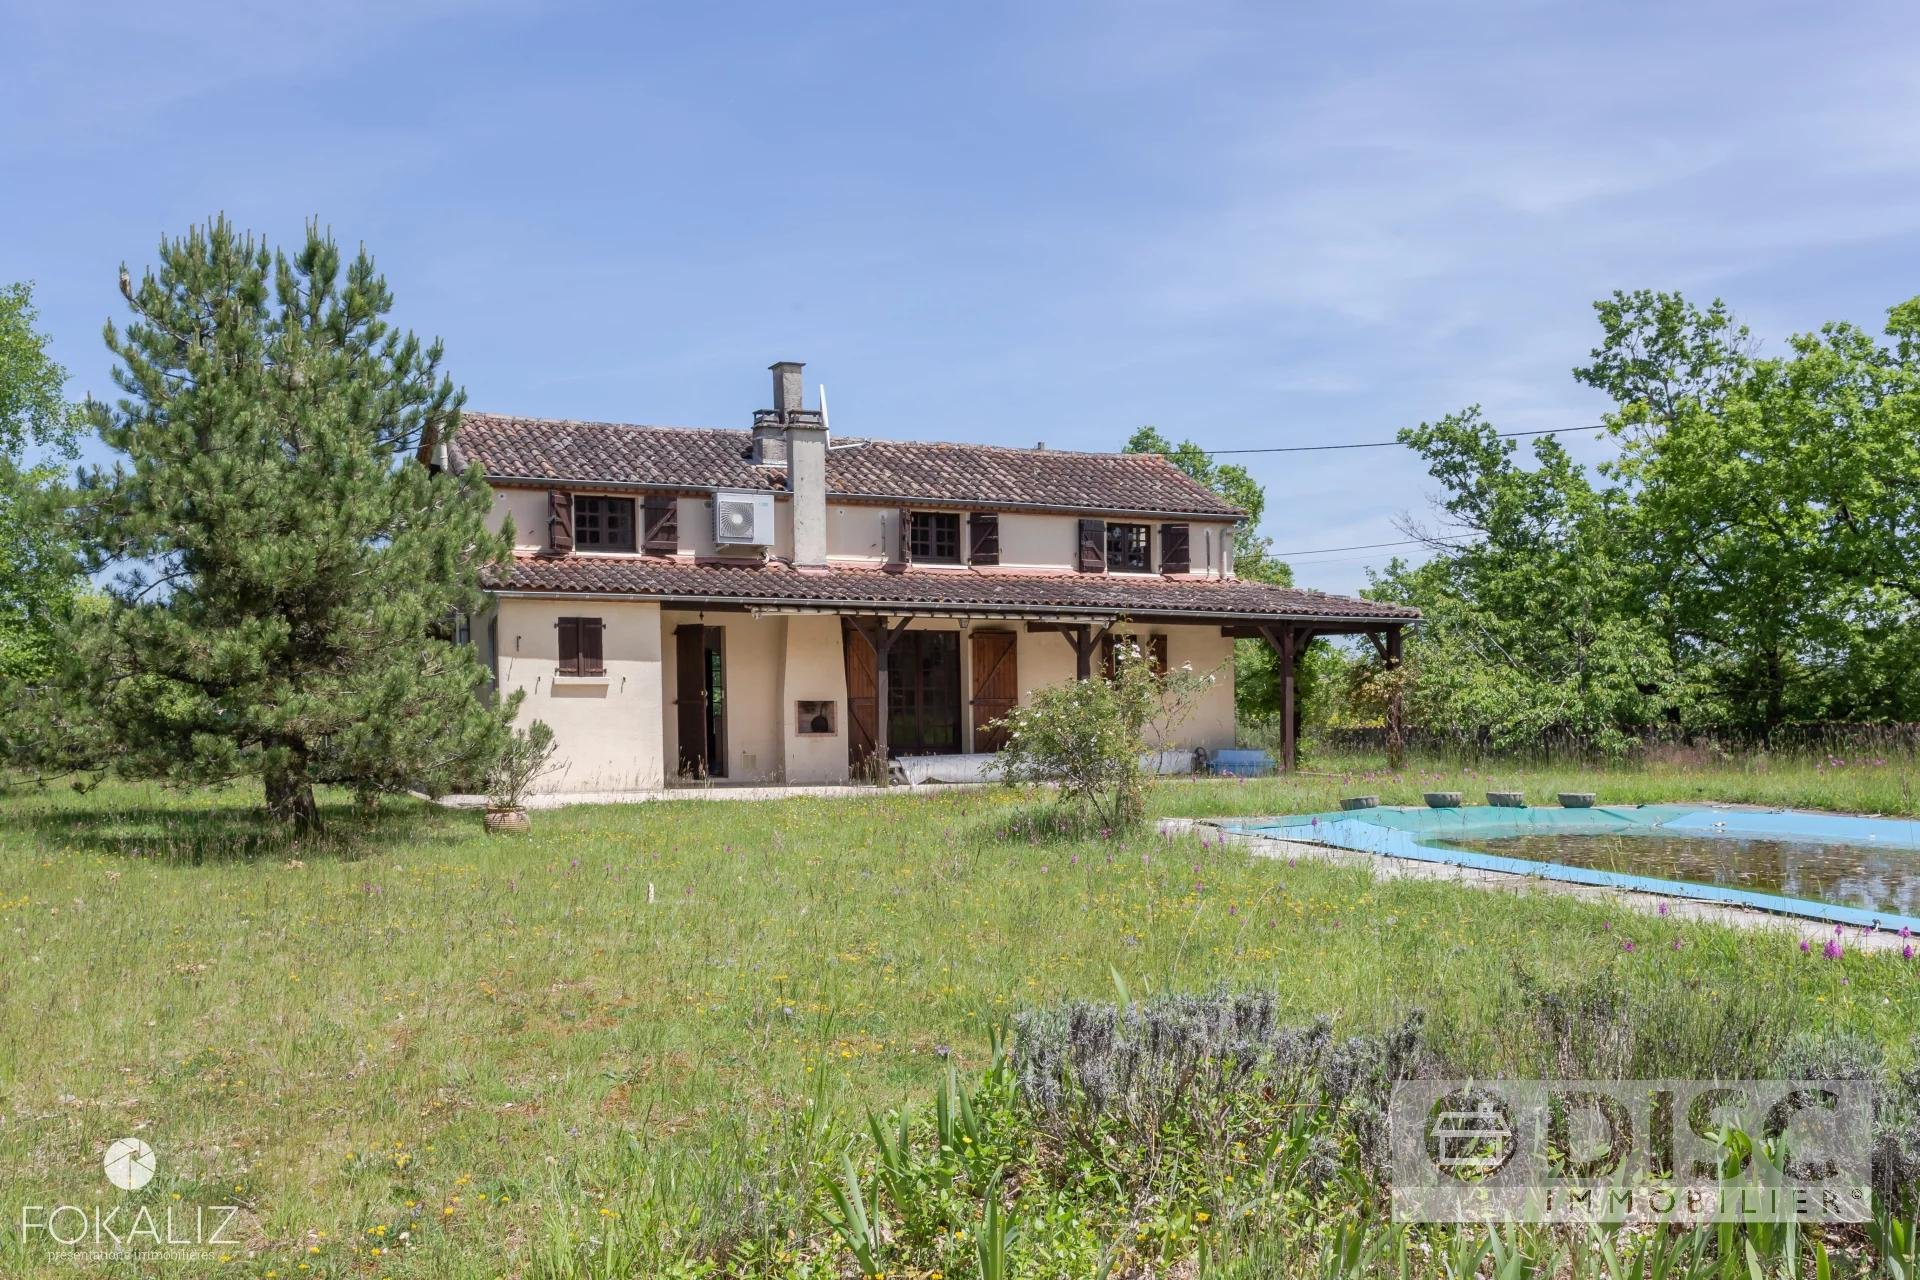 Spacious house with swimming pool and garden